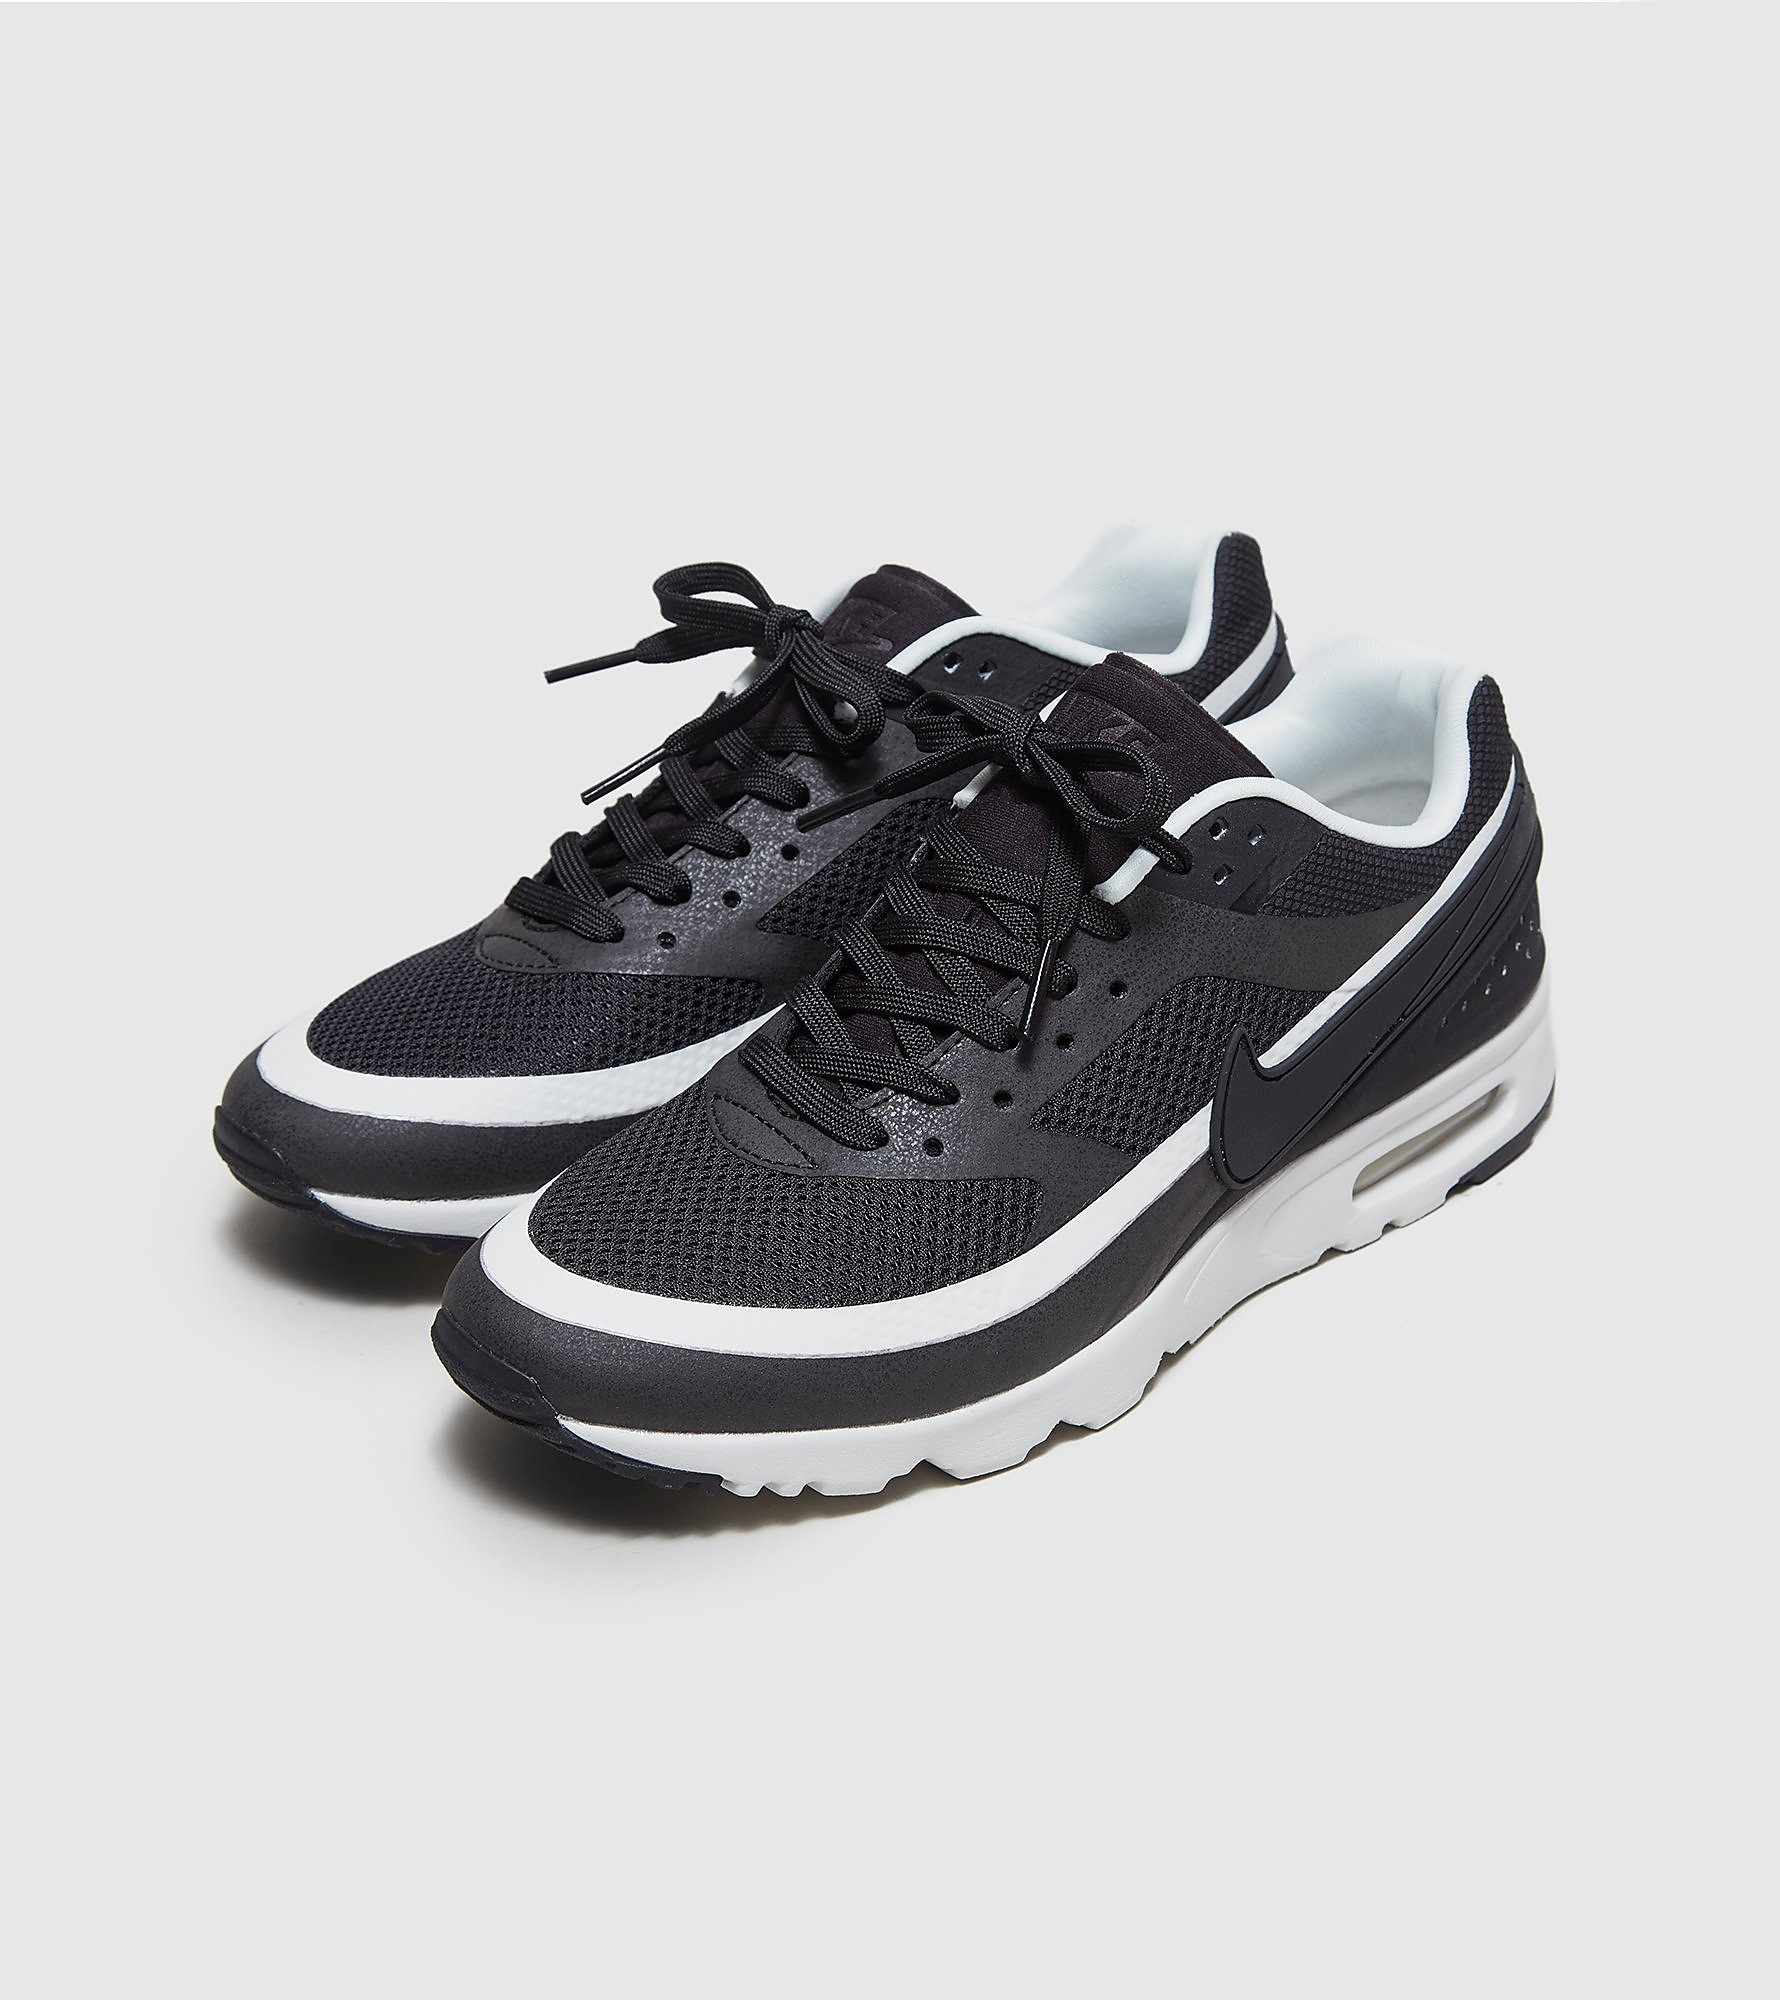 Nike Air Max BW Women's